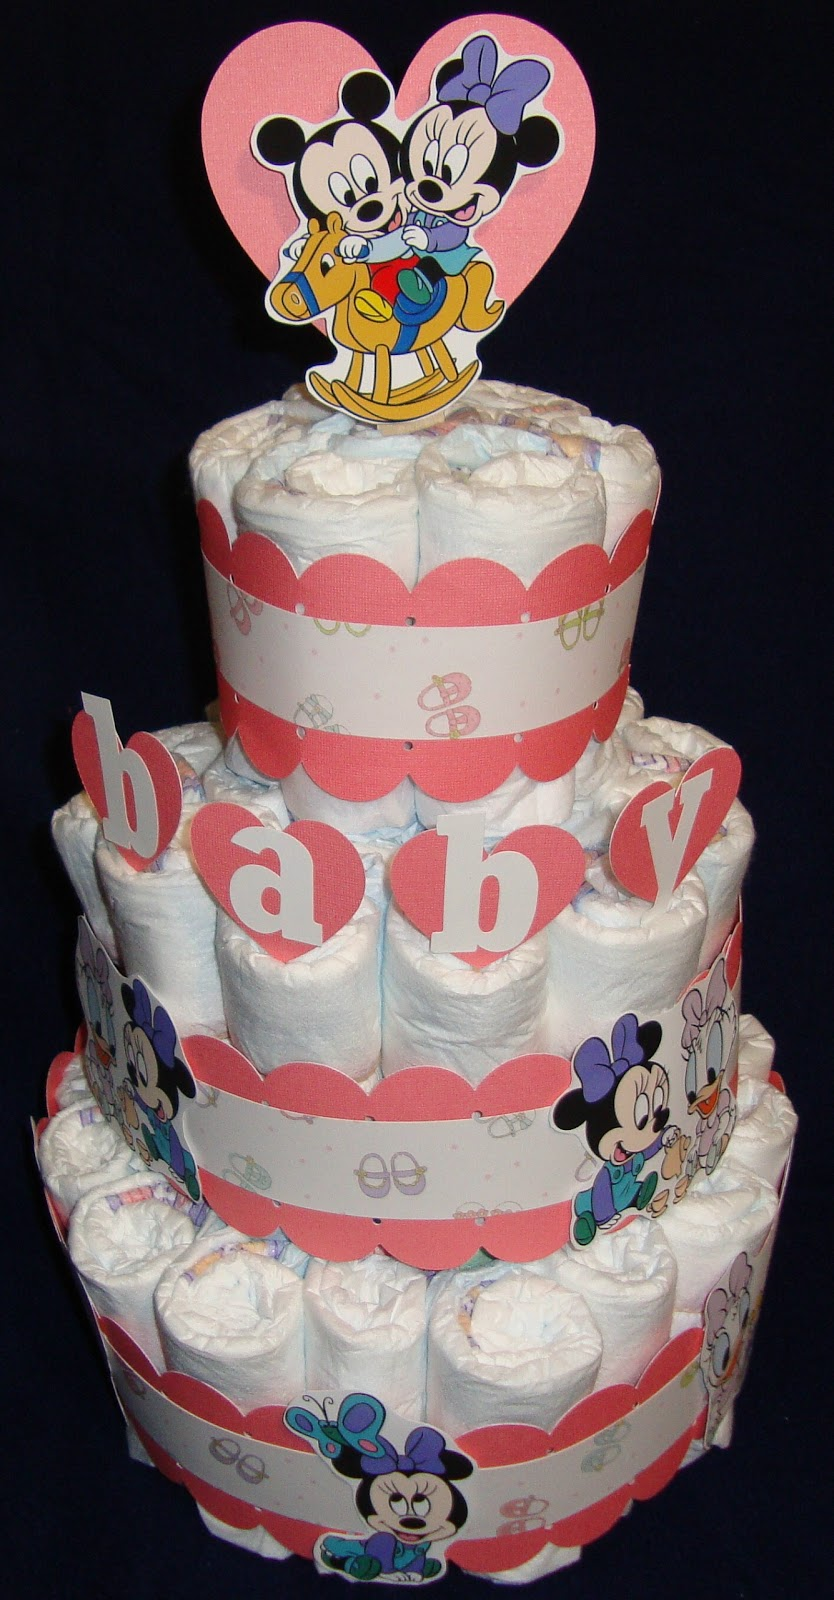 Glora's Crafts: Disney Diaper Cake with an Action Wobble